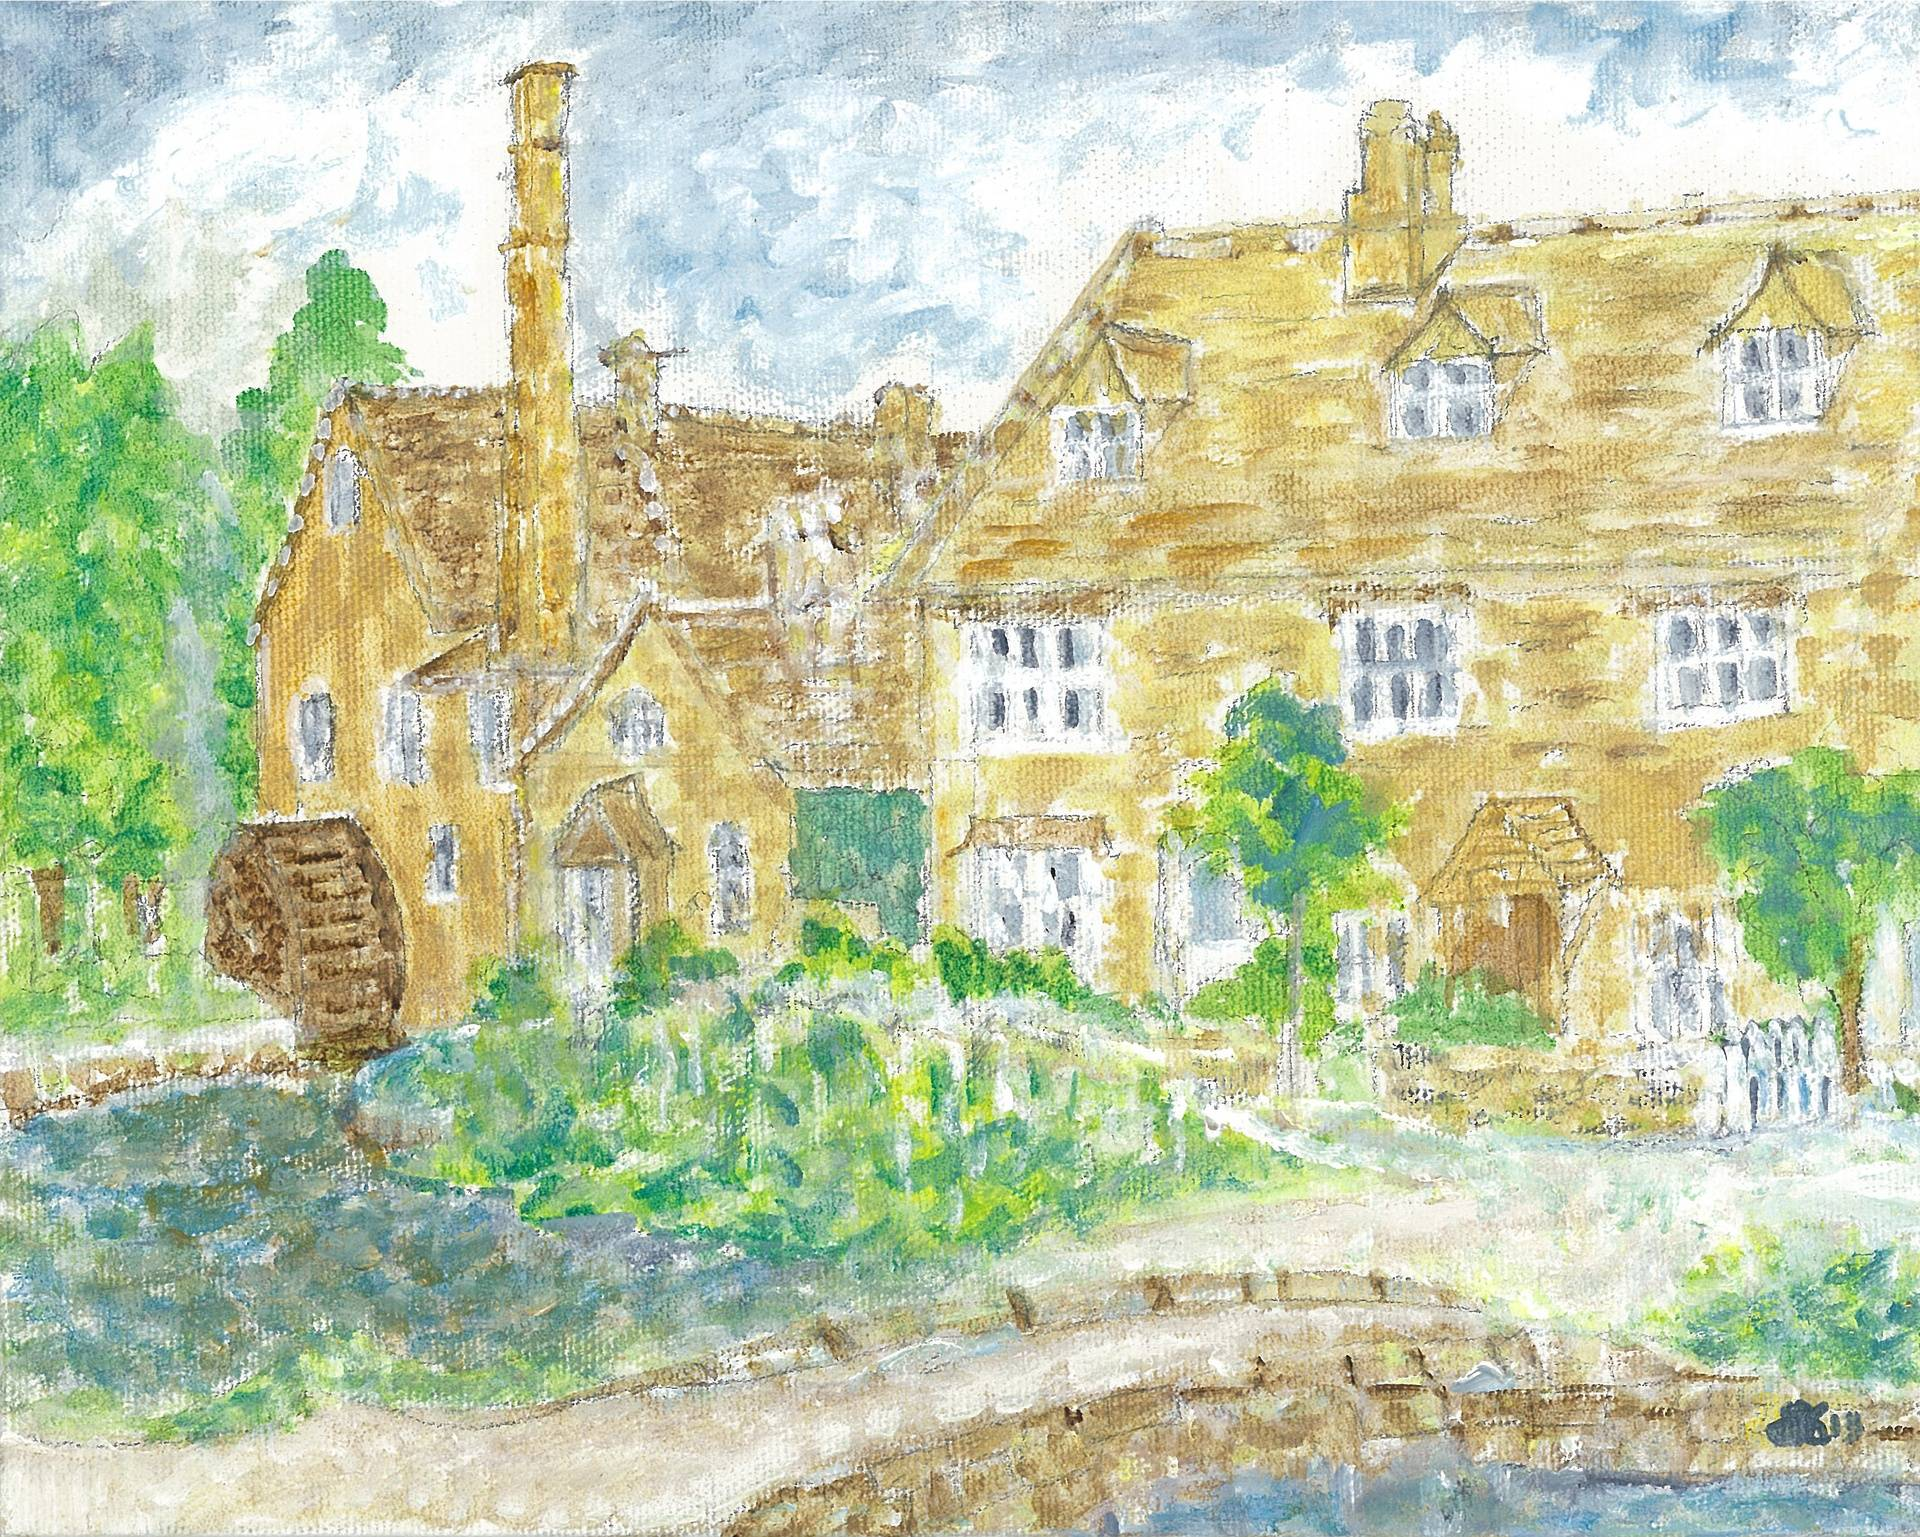 Lower Slaughter Mill - The Cotswolds, England